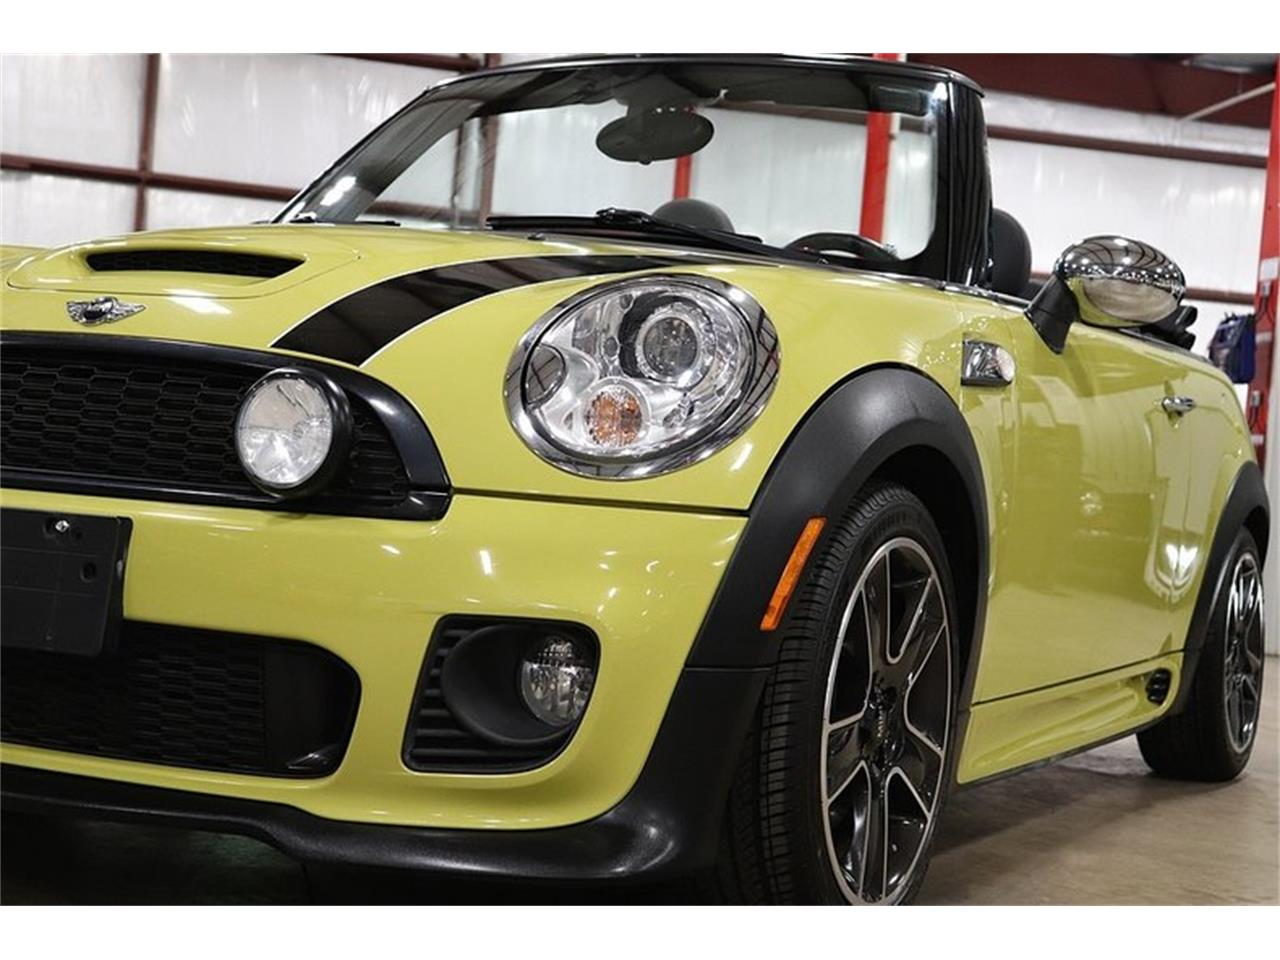 2009 MINI Cooper for sale in Kentwood, MI – photo 31